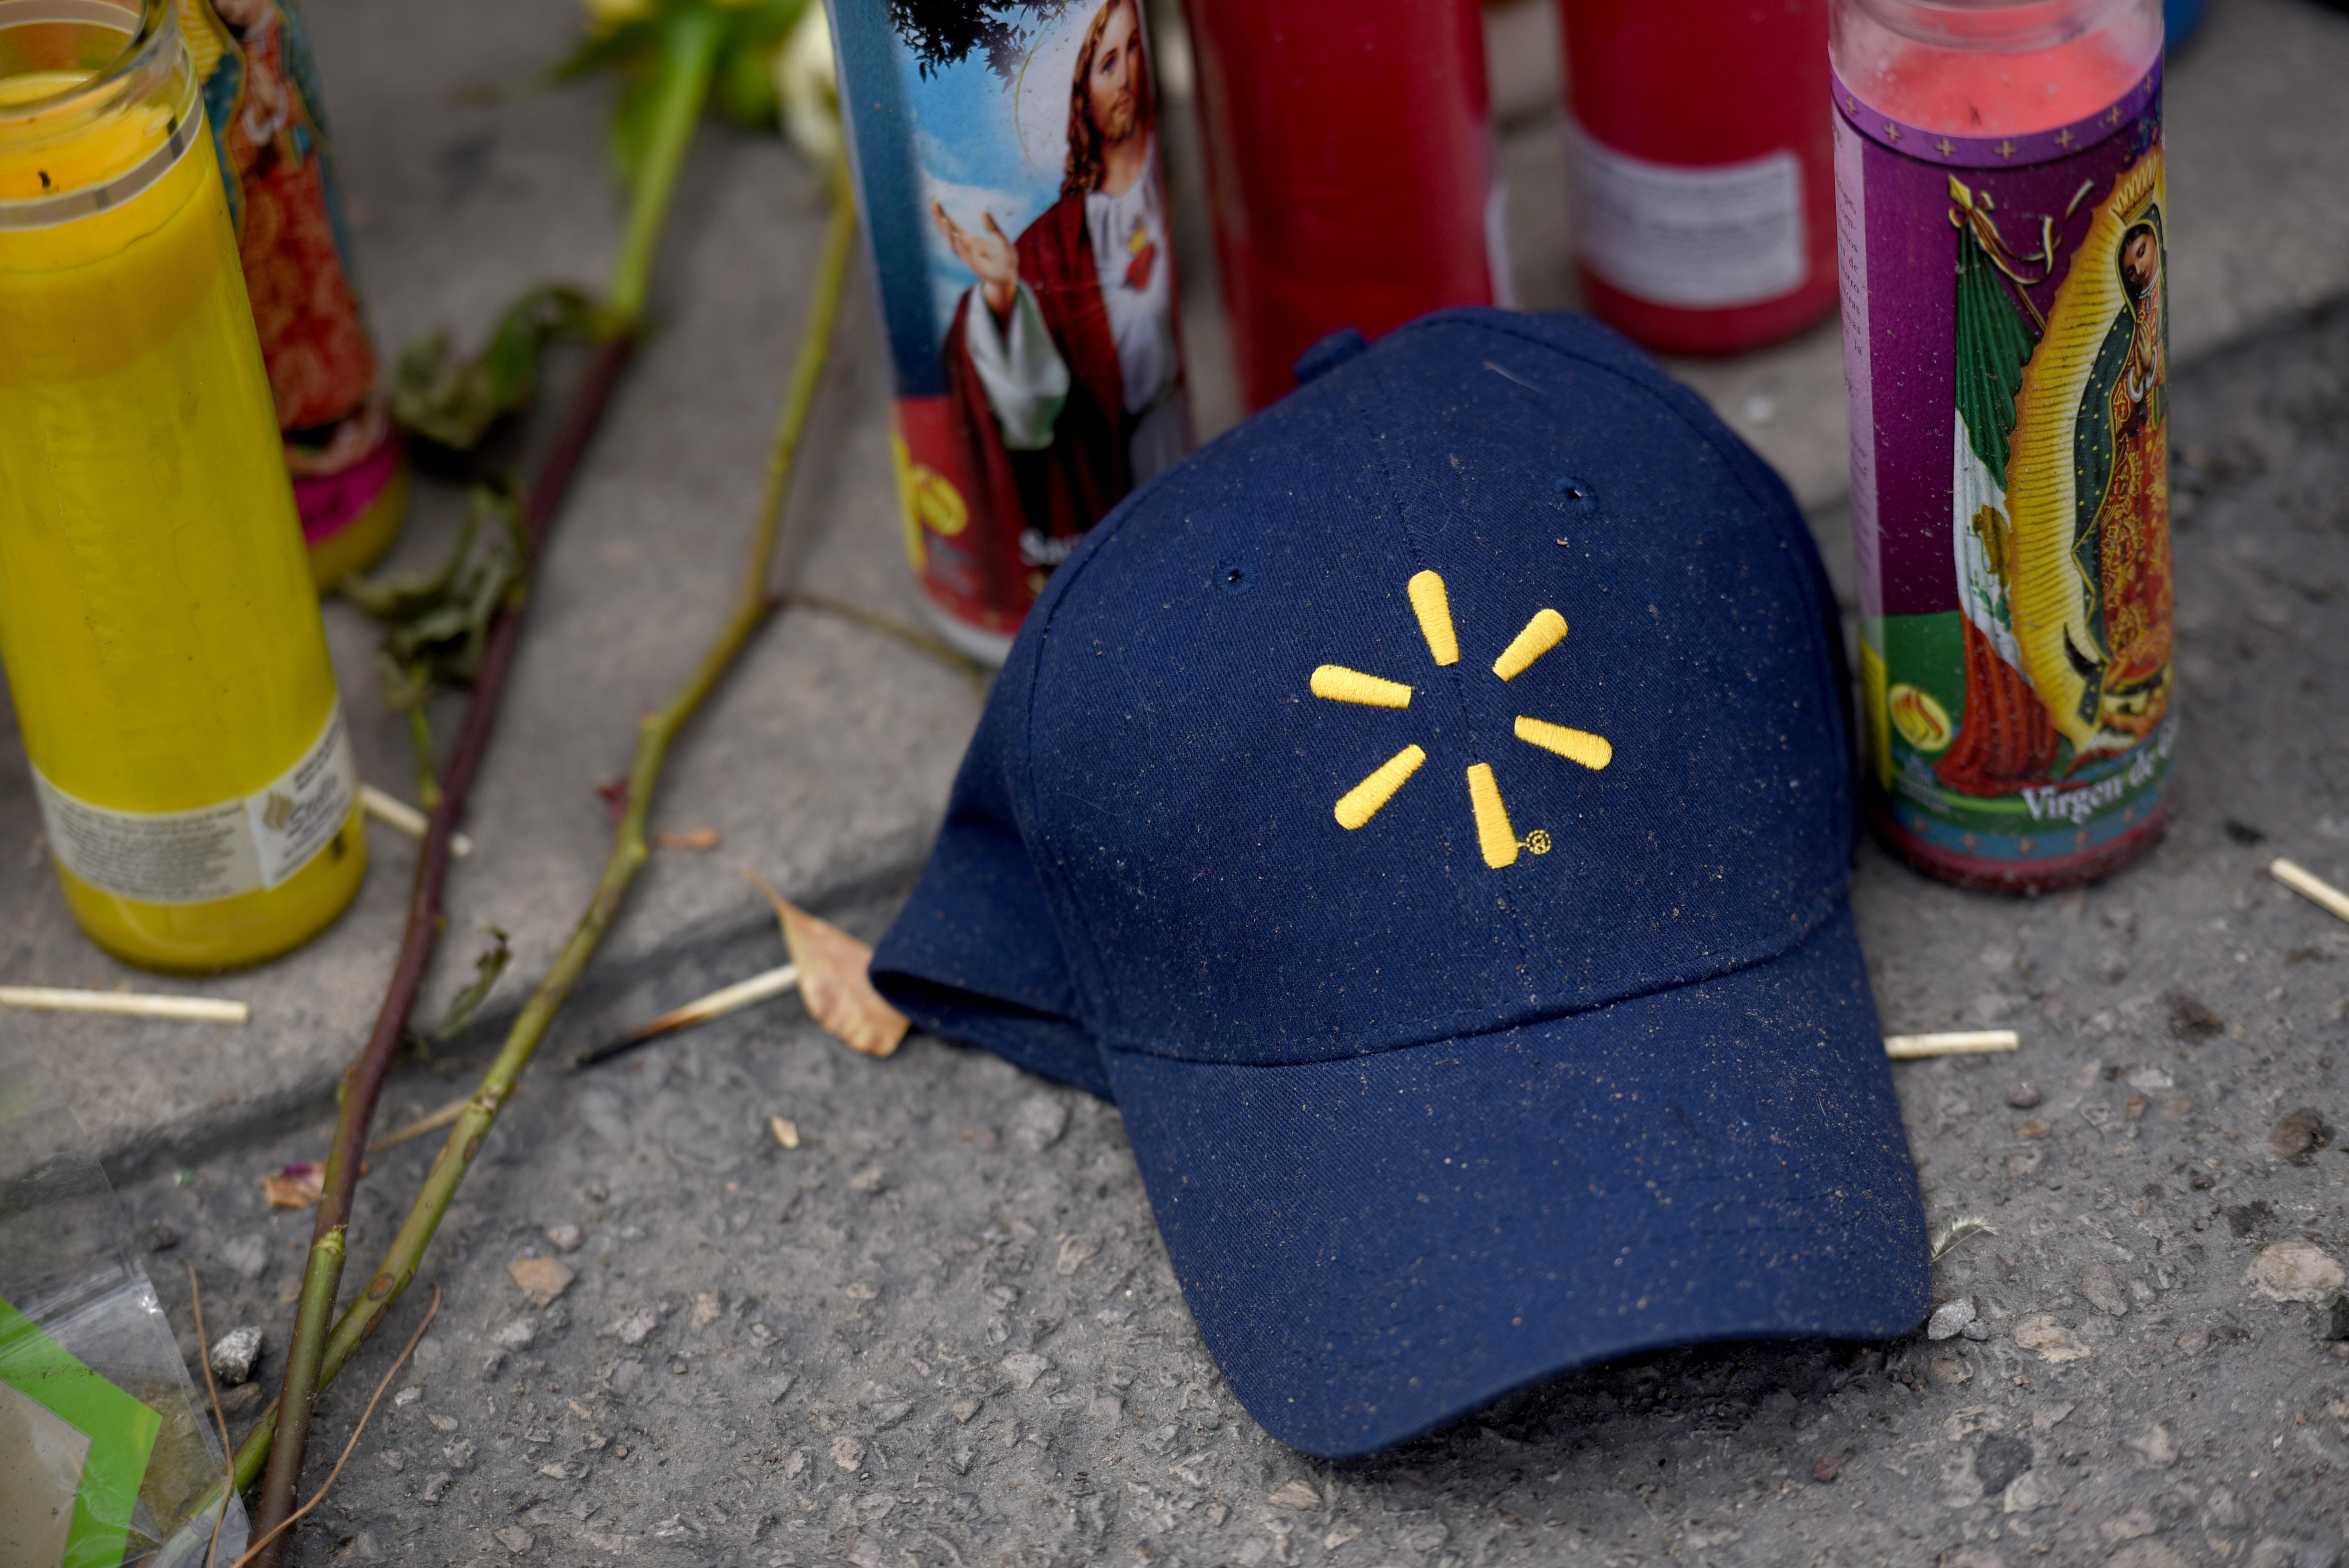 Walmart CEO responds to shootings: 'We'll be thoughtful and deliberate in our responses'